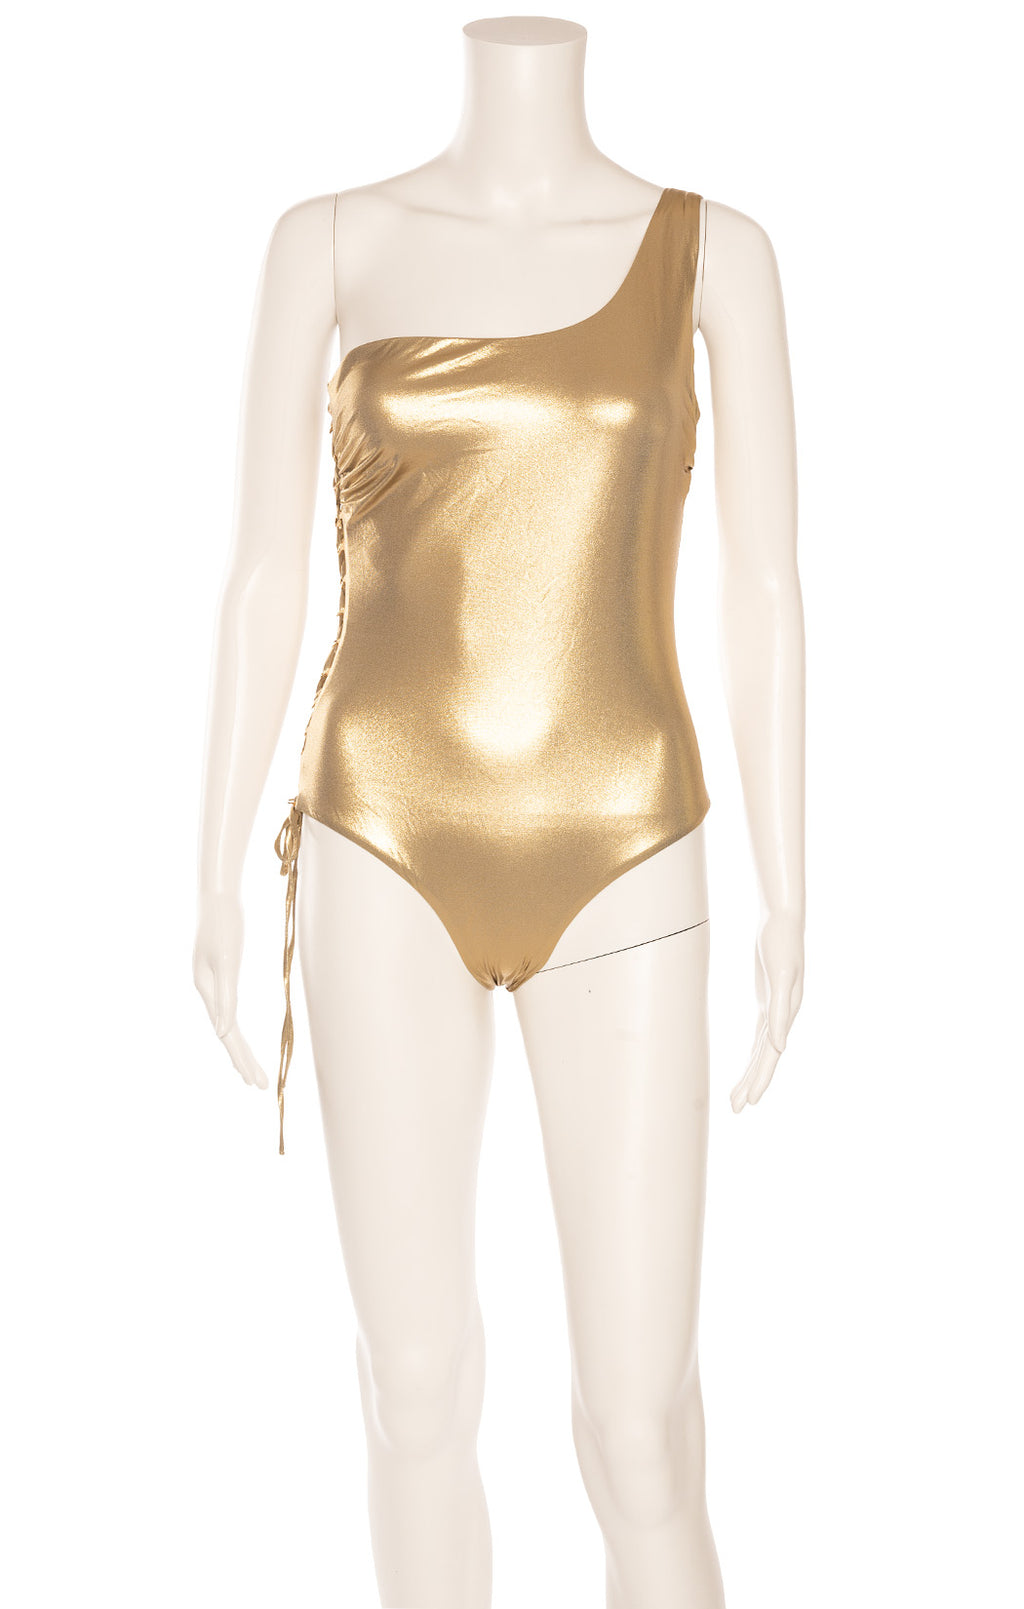 Gold one shoulder one piece bathing suit with gold grommets and open lace up side